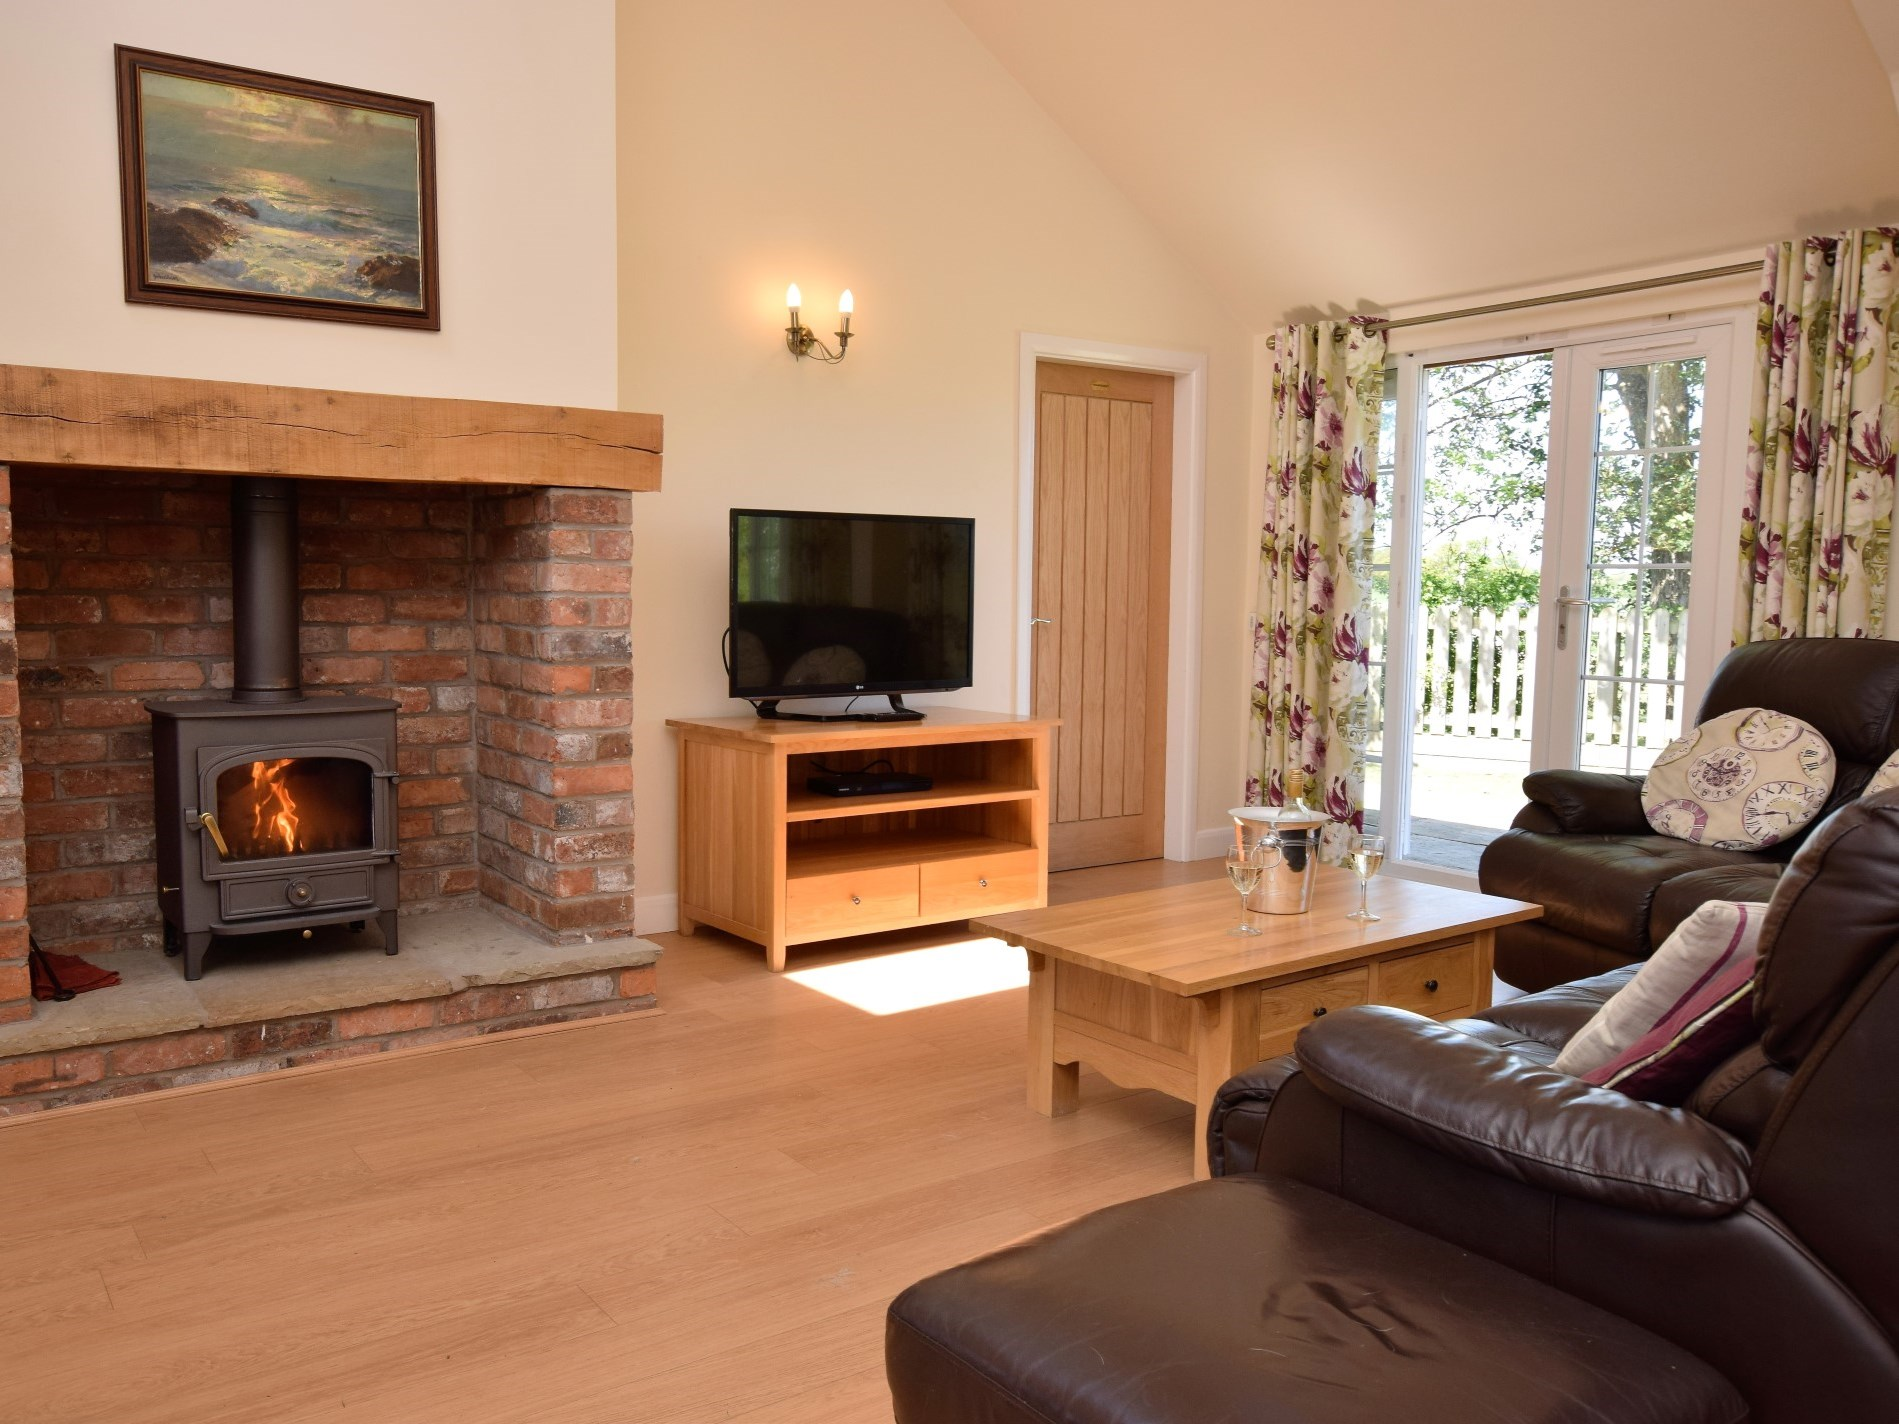 3 Bedroom Cottage in Tarporley, Snowdonia, North Wales and Cheshire